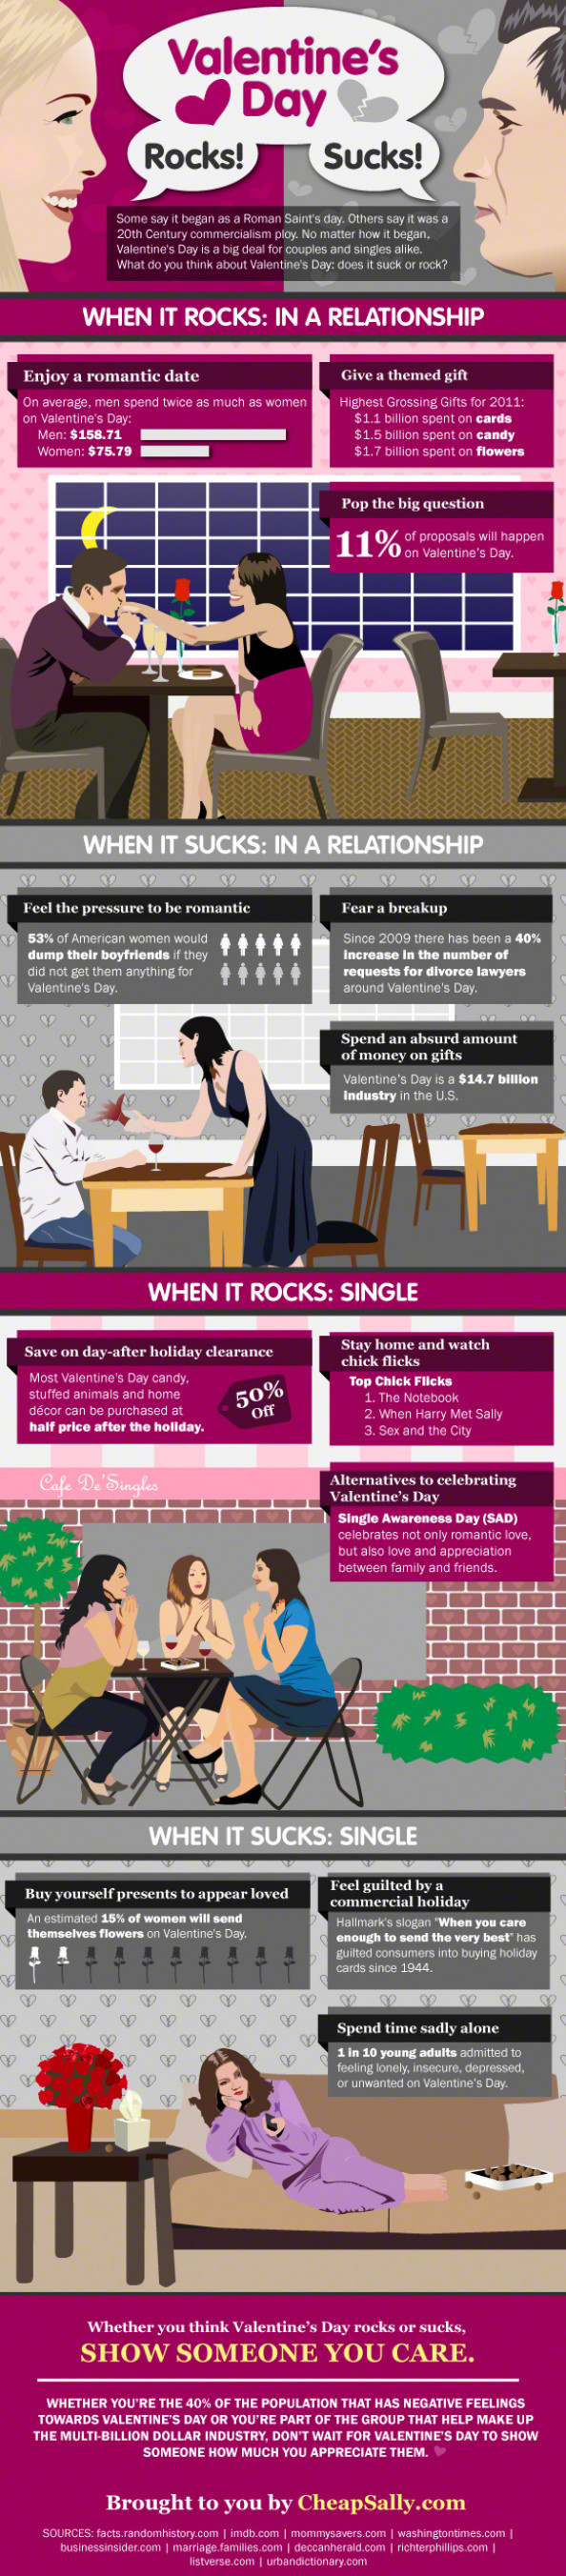 Valentine&#039;s day Rocks/Sucks Infographic